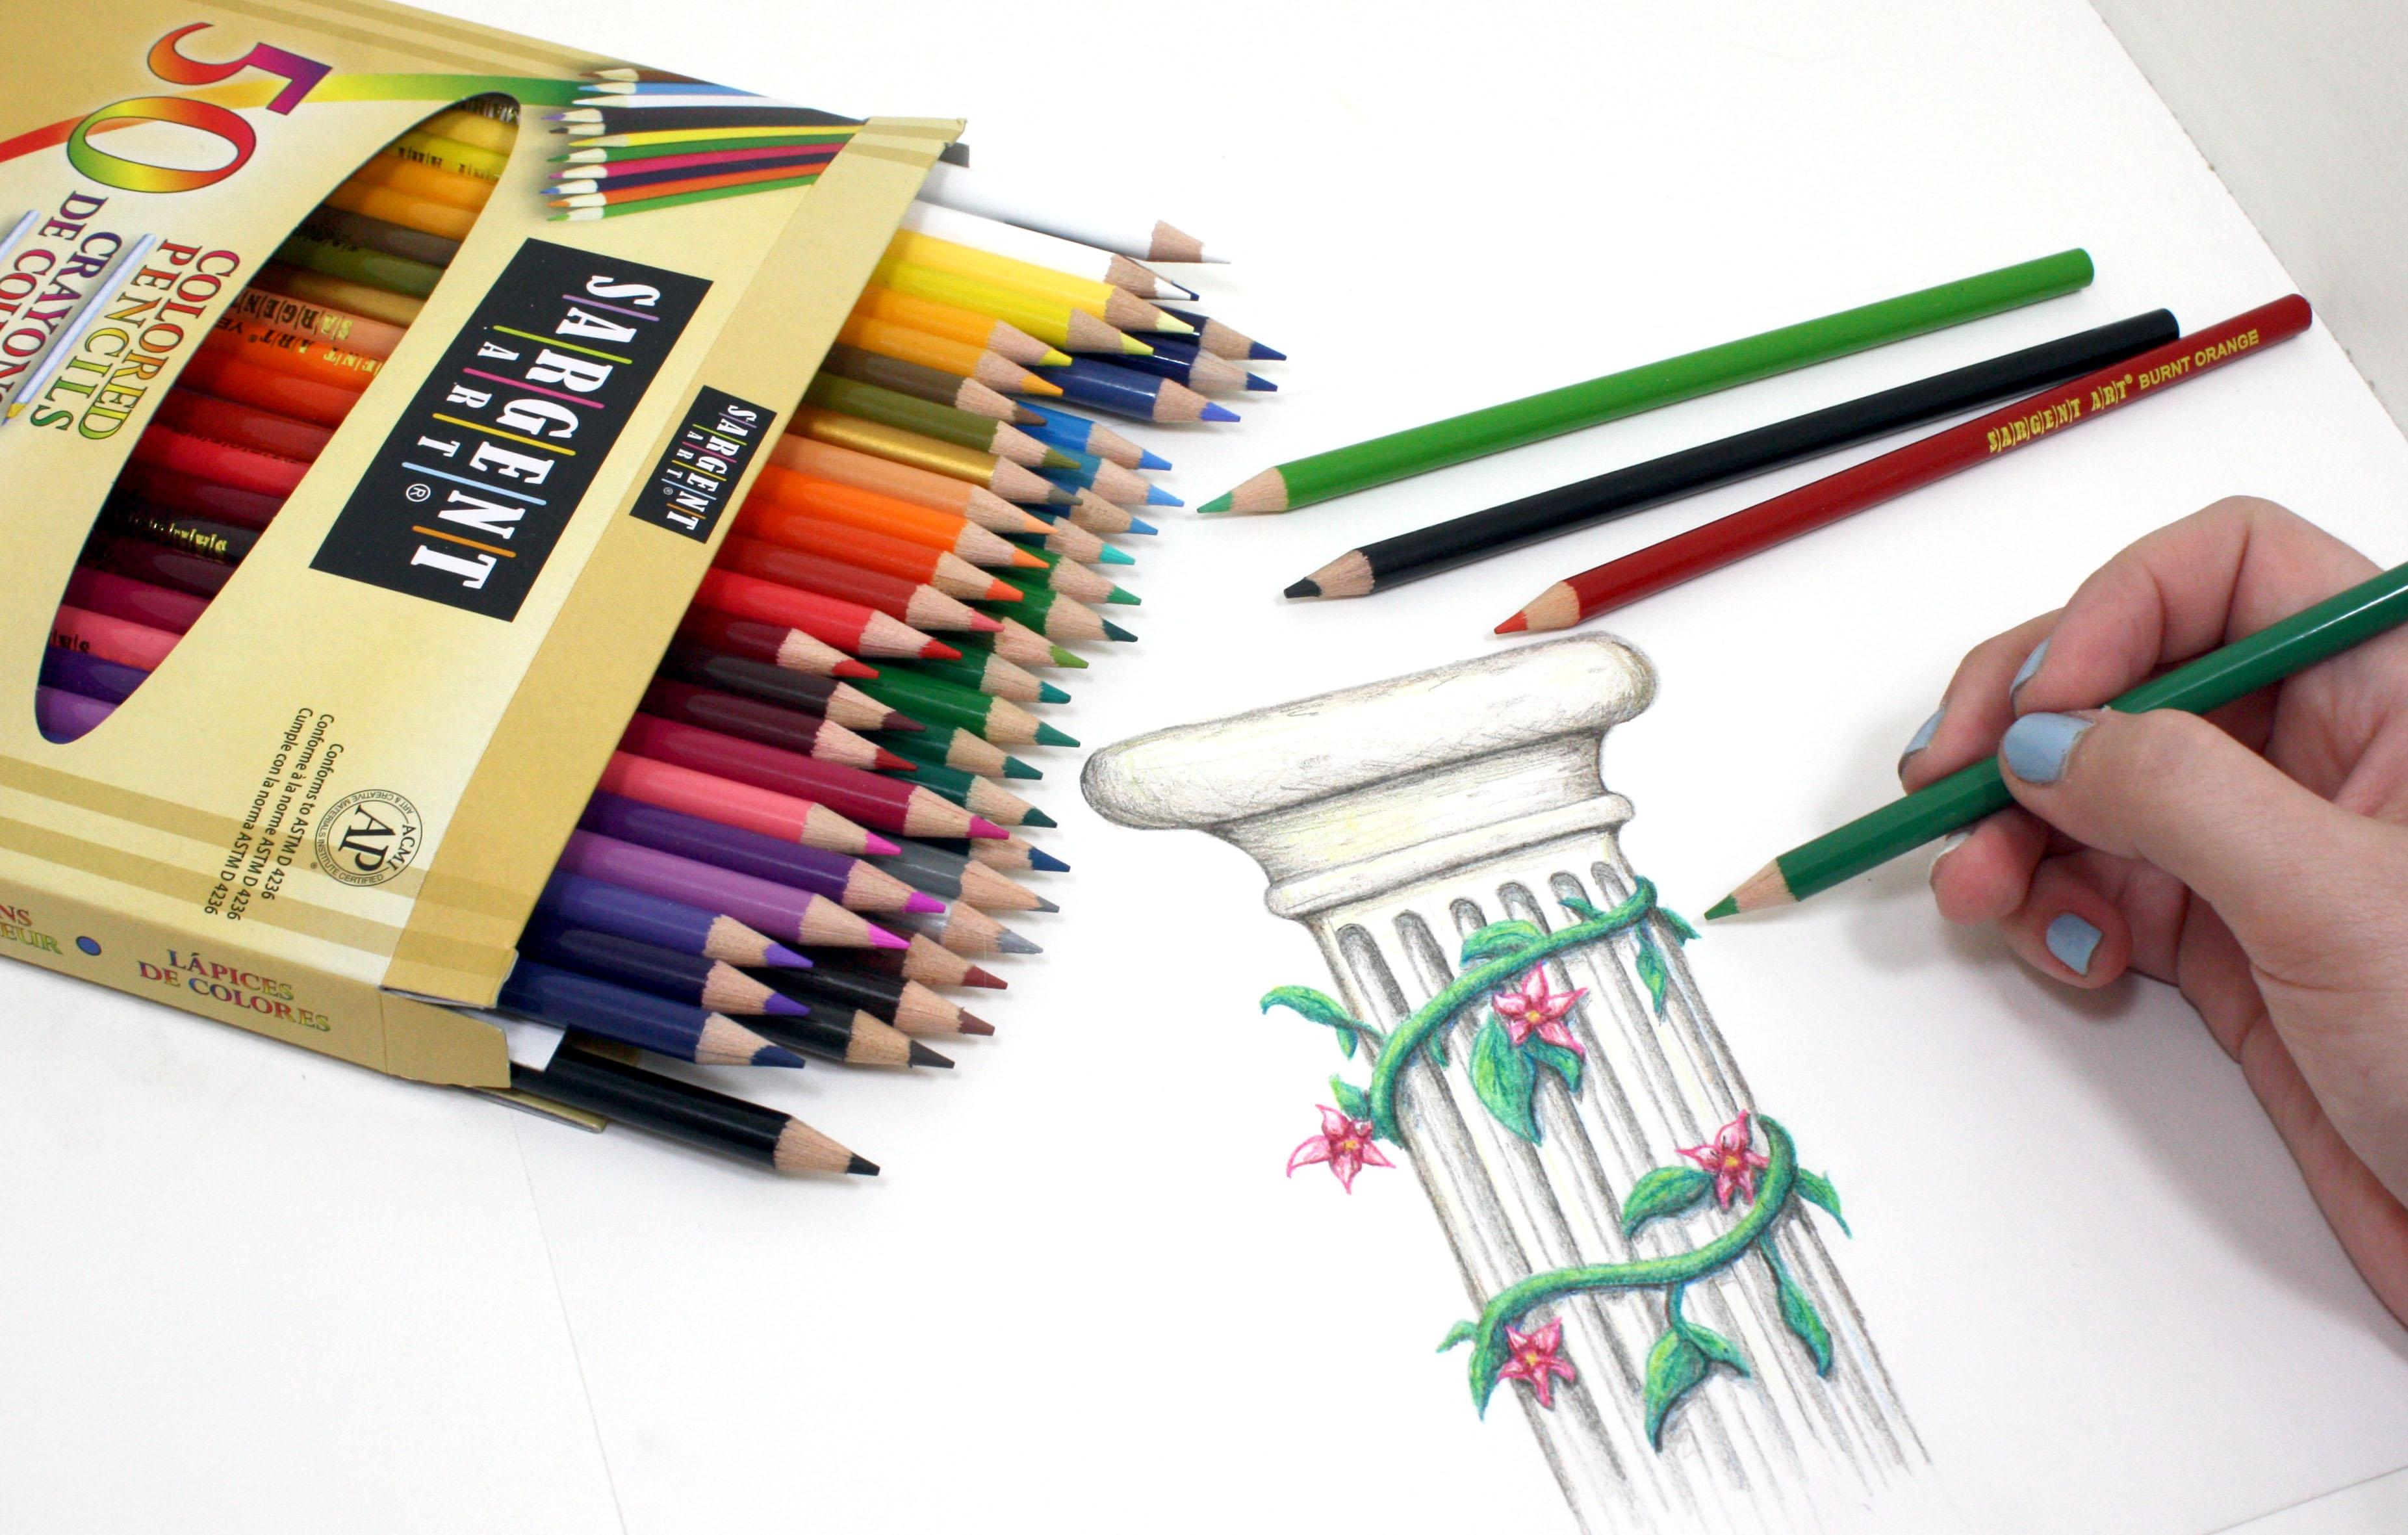 Sargent Art 22-7251 50 Count Assorted Colored Pencils: Accessory ...